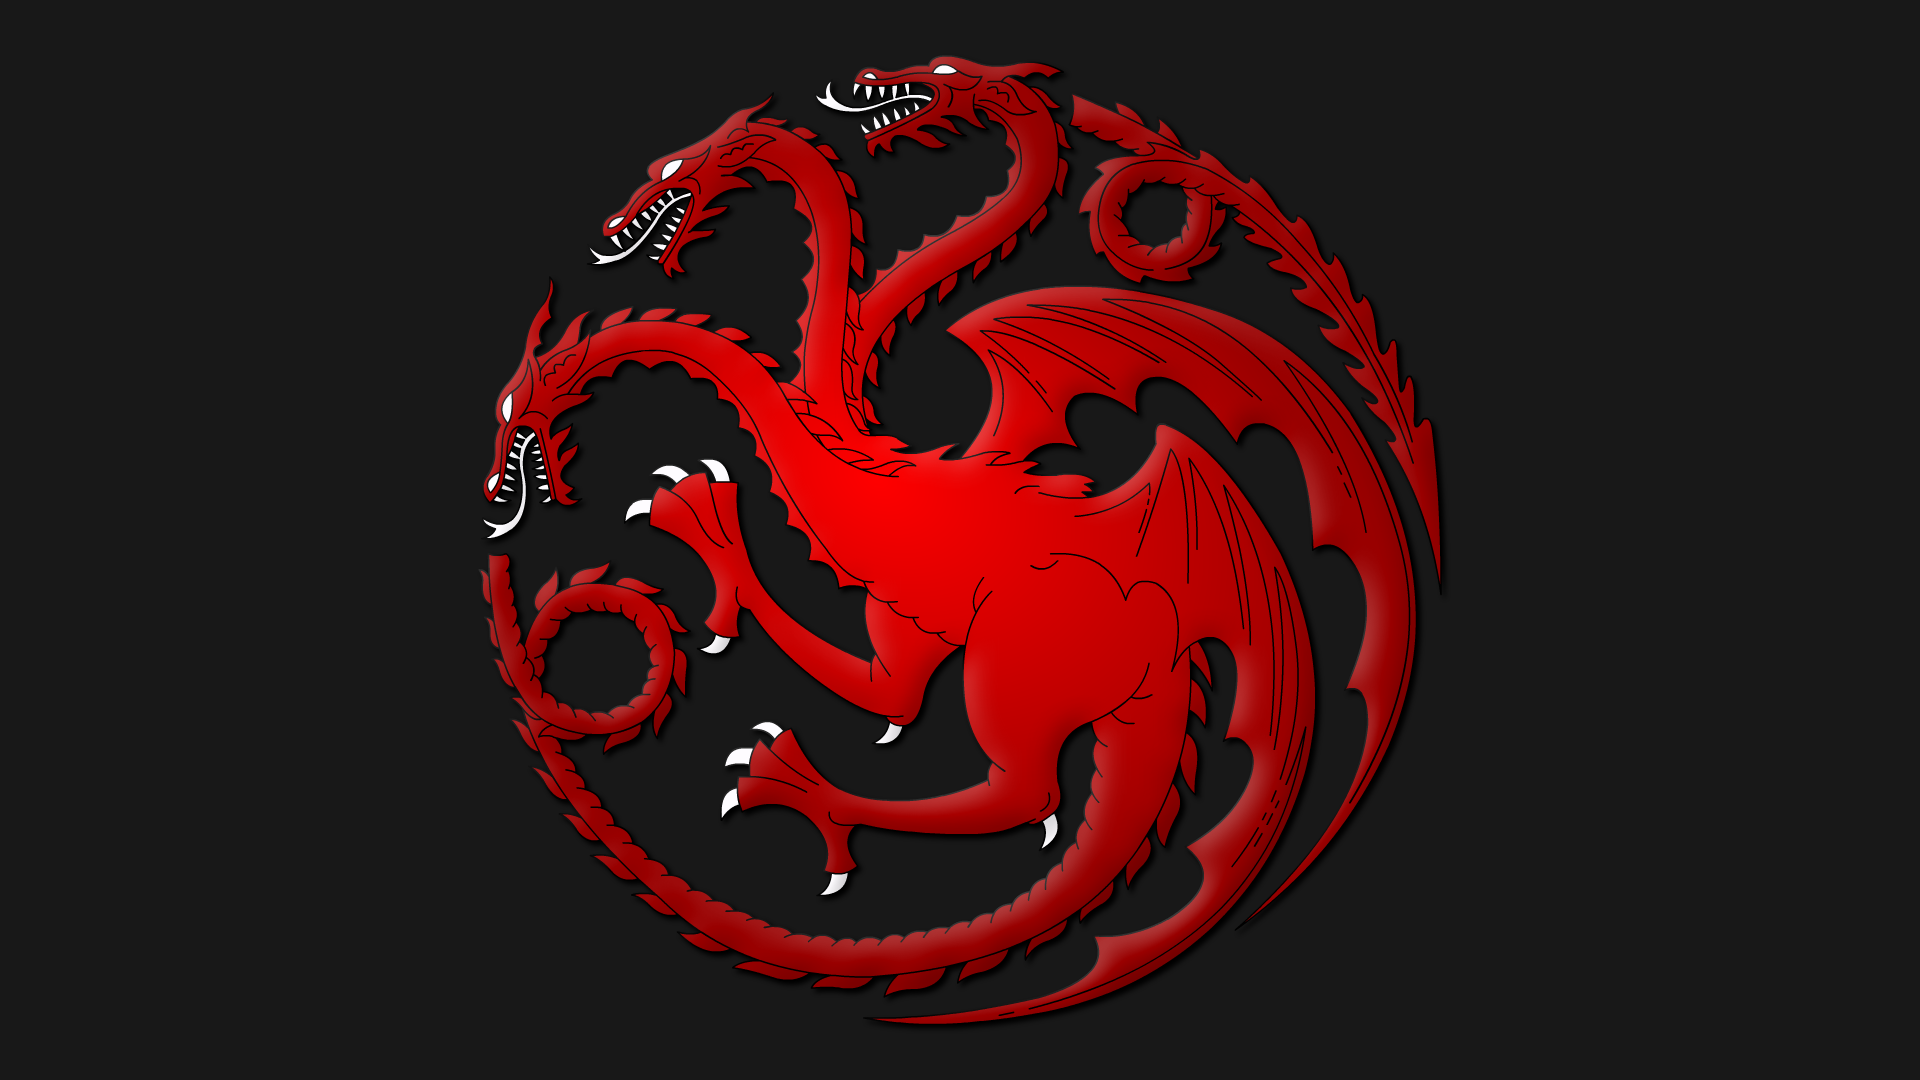 House Targaryen Symbol by Yurtigo on DeviantArt